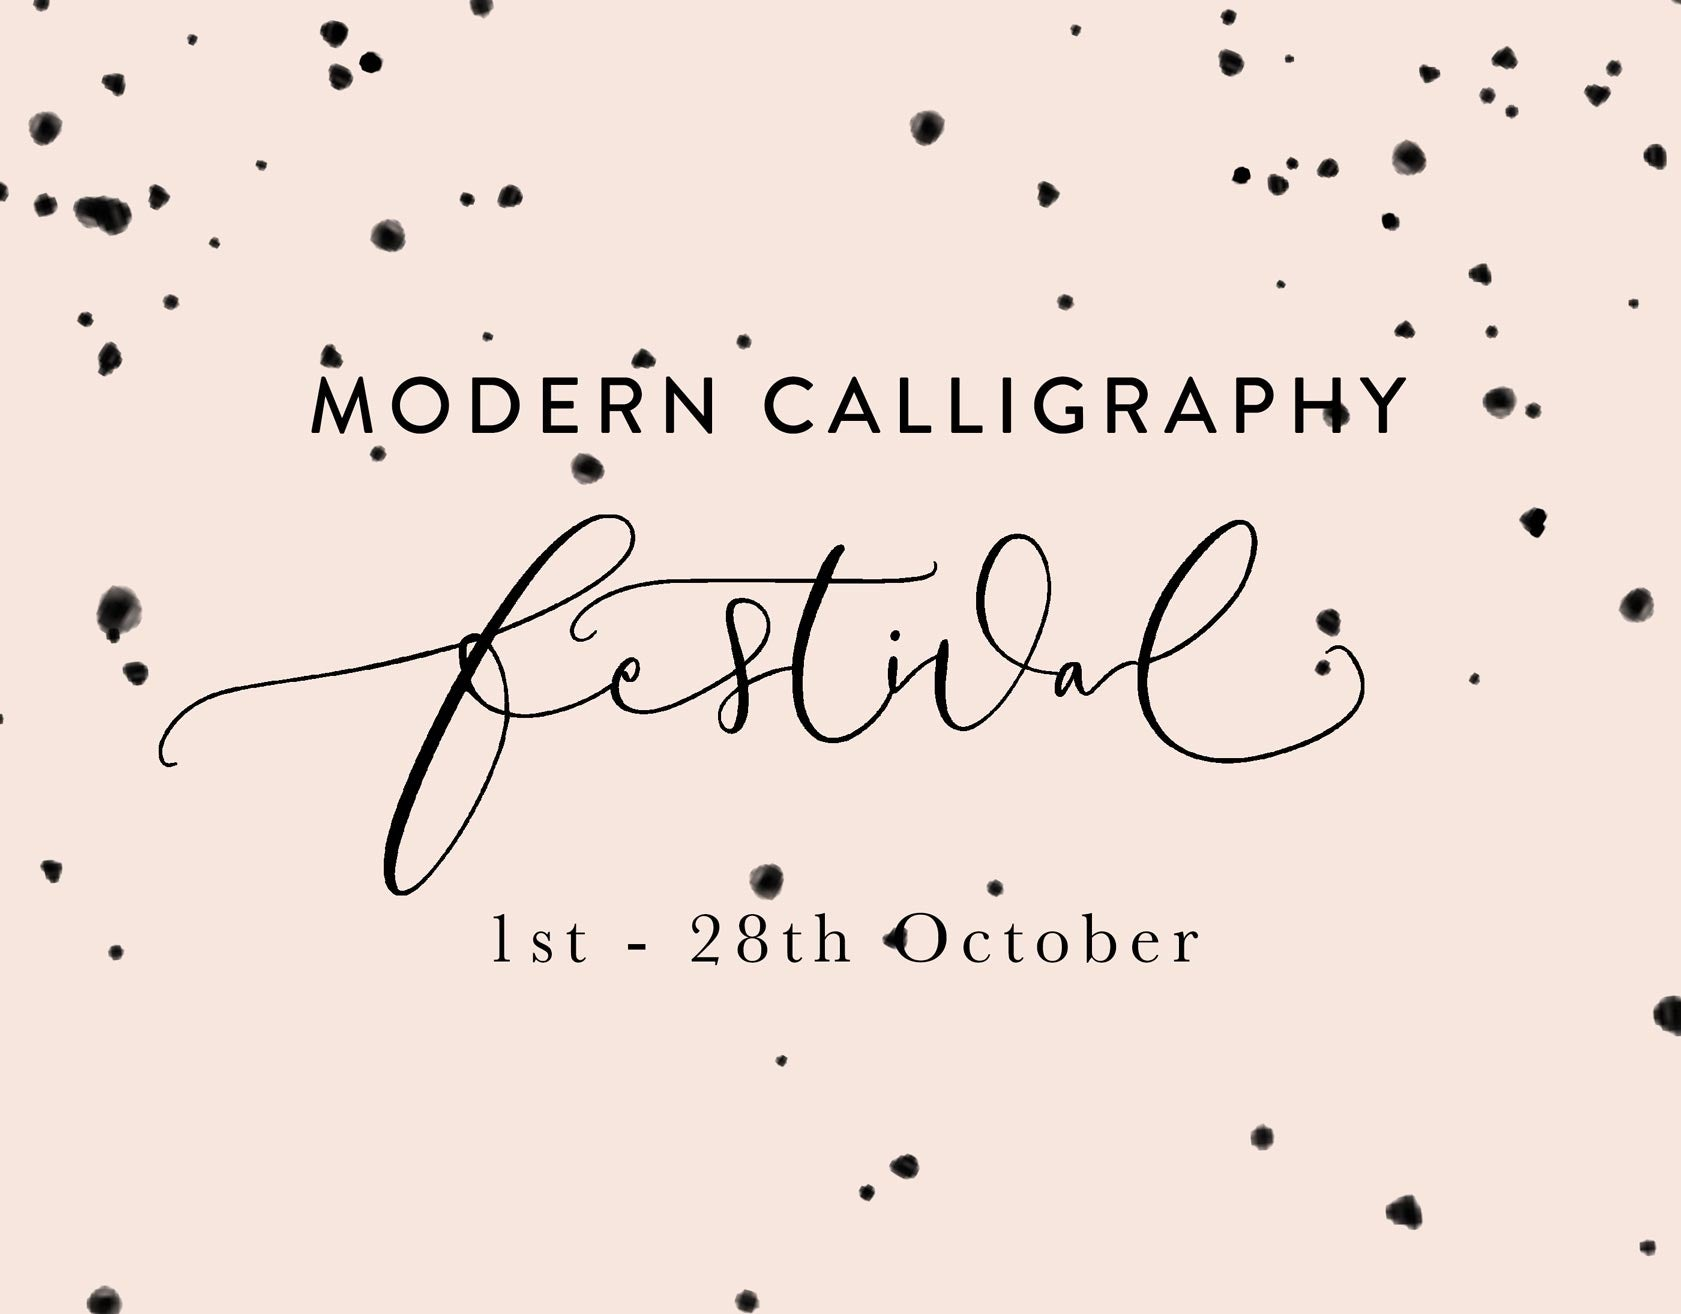 Quill London | Hosting London's First Modern Calligraphy Festival!